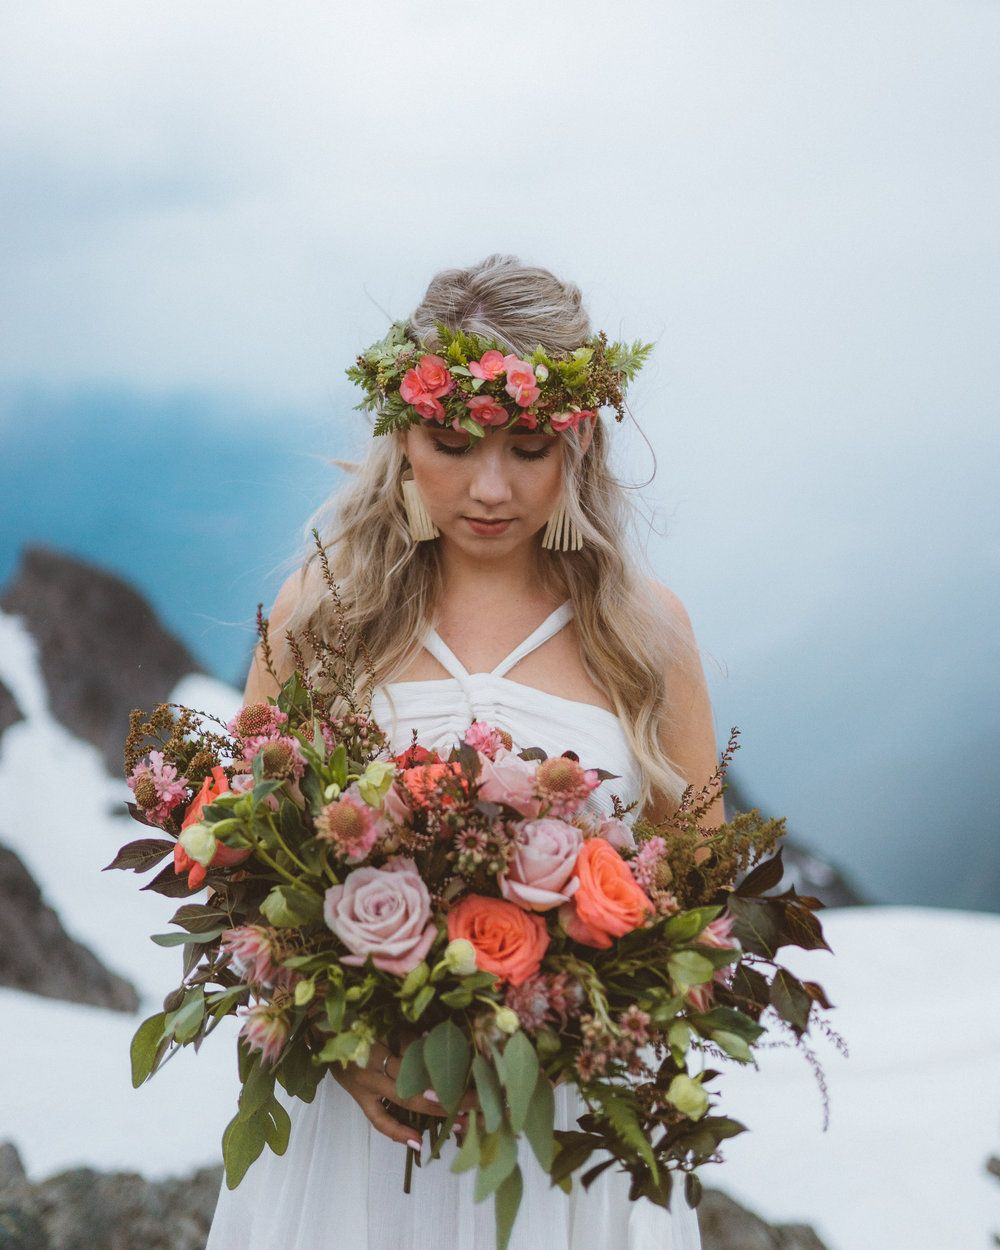 Vancouver Wedding Flowers: Engagement Bouquet With Hair Piece By Vancouver Wedding